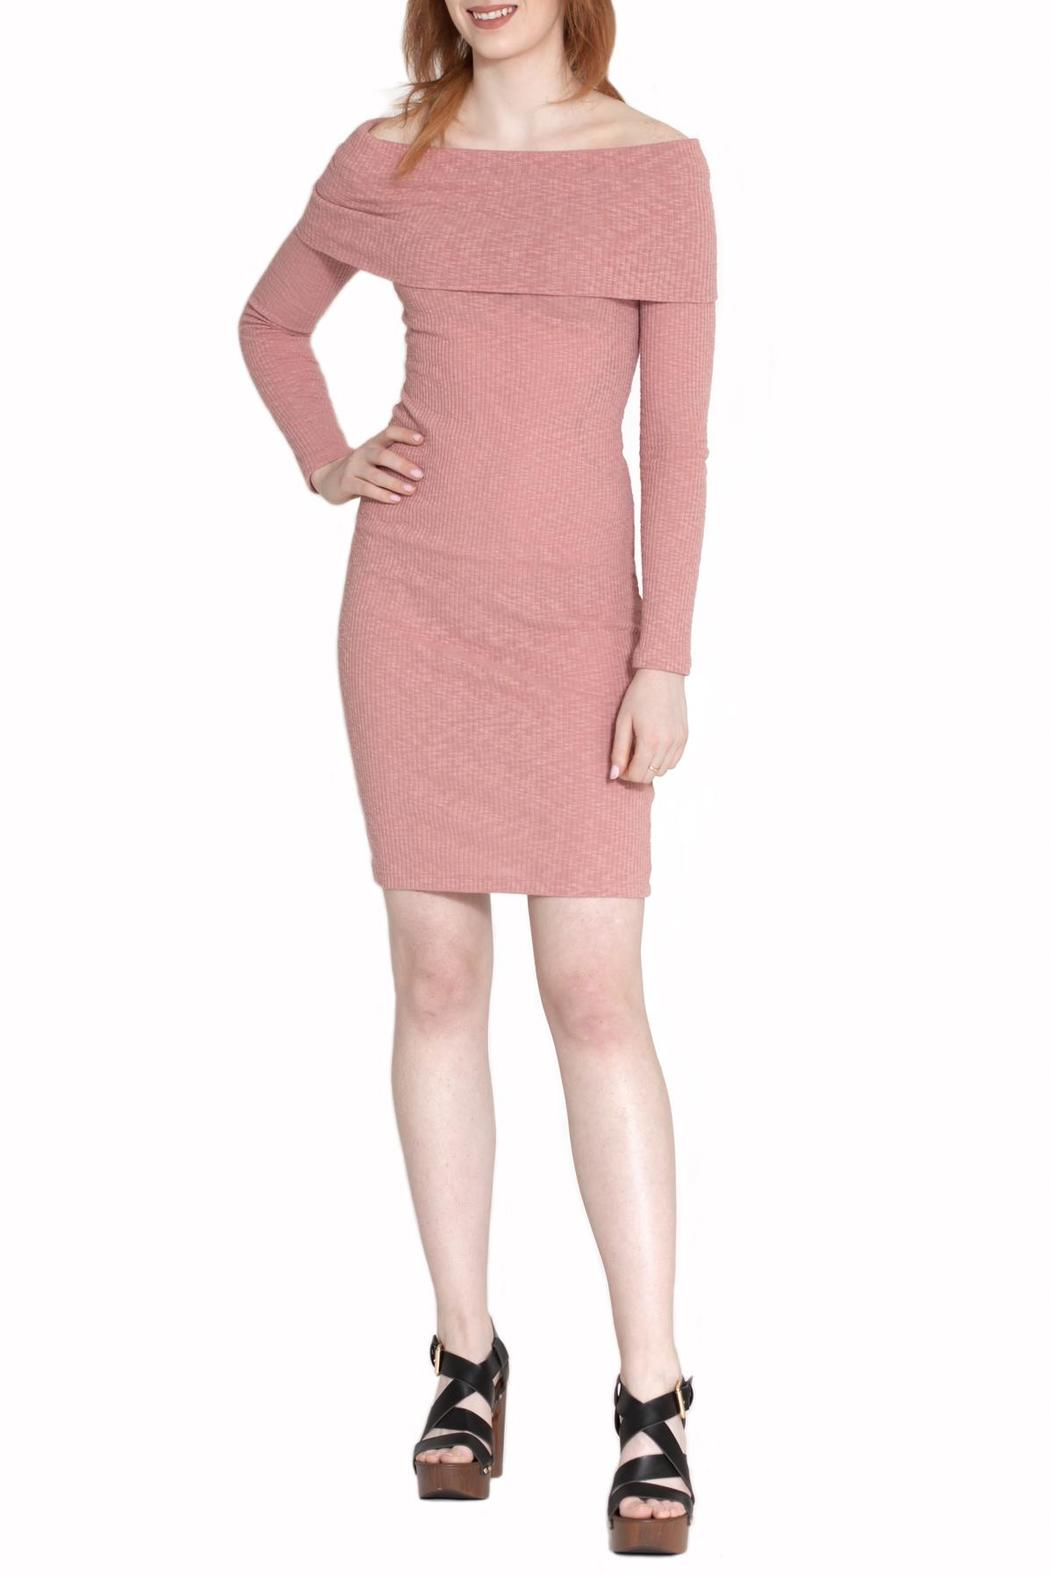 Cherish Off-Shoulder Bodycon Dress - Main Image